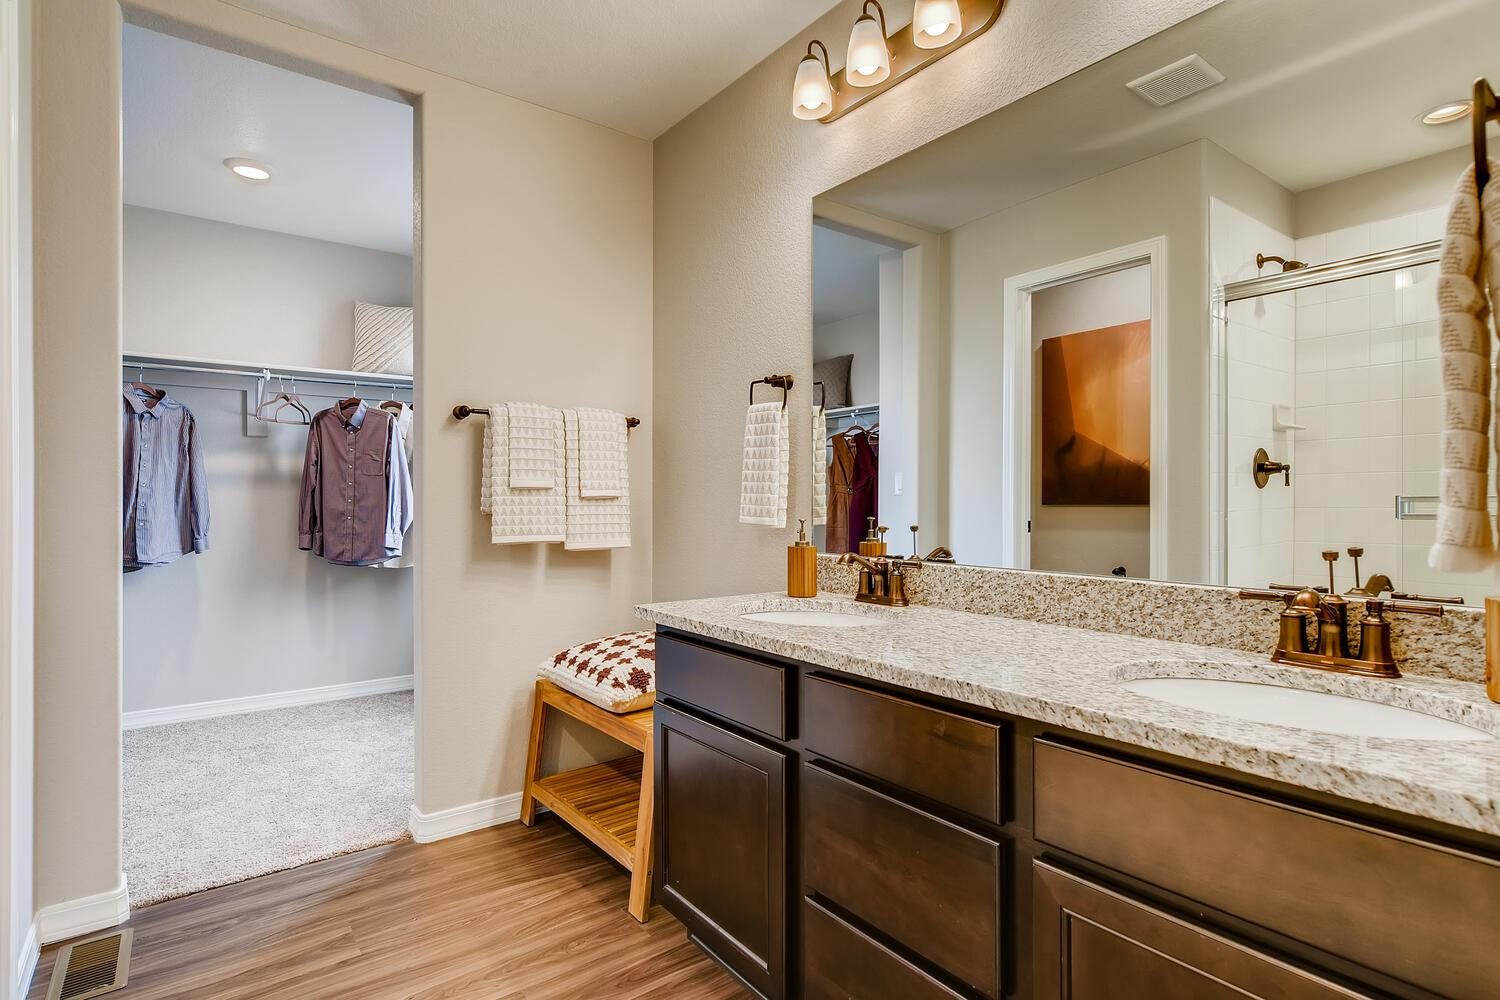 Bathroom featured in the Platinum (Residence 29204) By Century Communities in Colorado Springs, CO